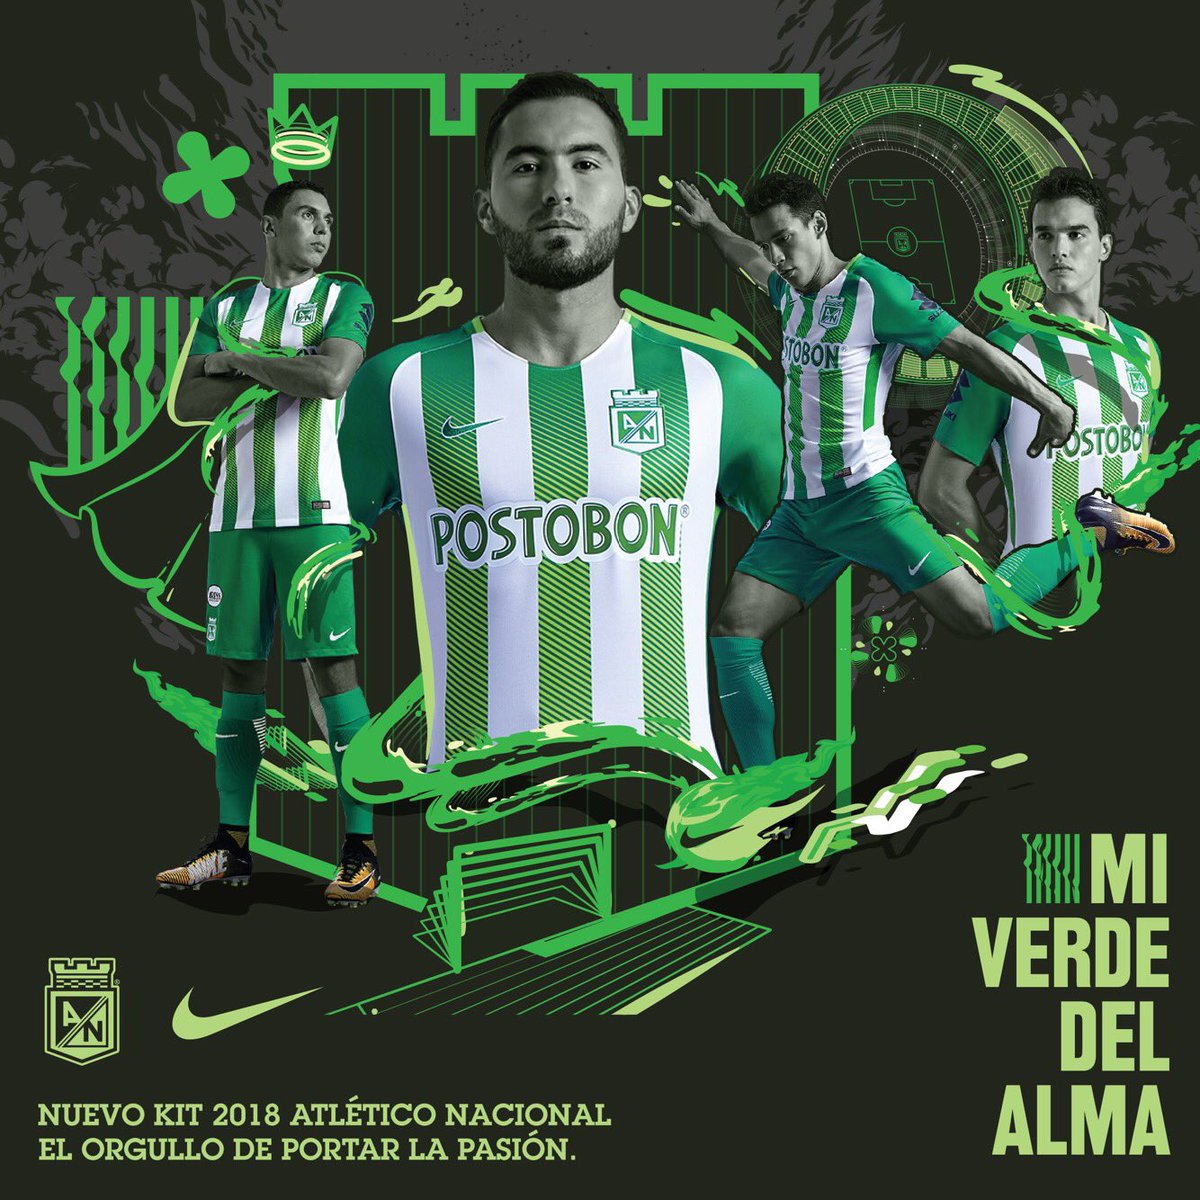 ee1fd152a Click to enlarge image atletico_nacional_2018_nike_home_kit_a.jpg · Click  to enlarge image atletico_nacional_2018_nike_home_kit_b.jpg ...